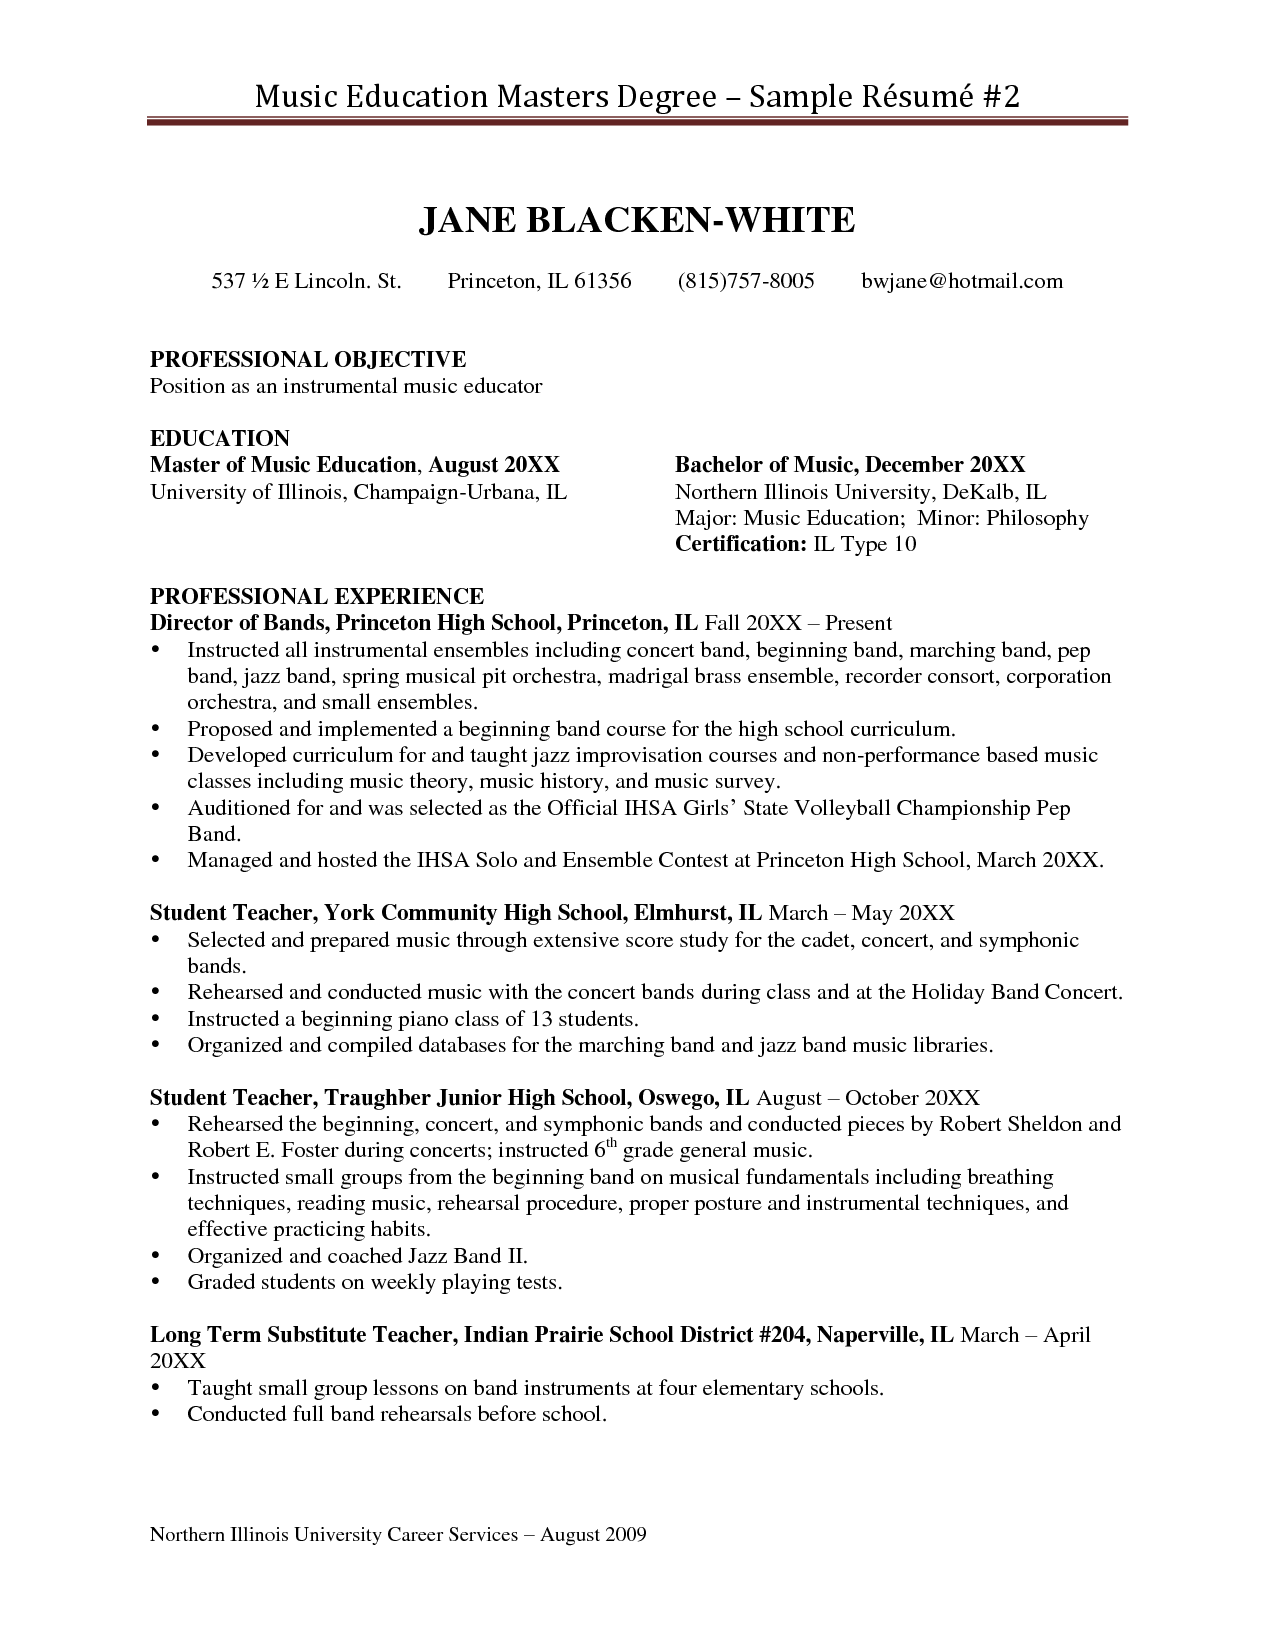 graduate school resume example httpwwwresumecareerinfograduate examples of graduate school resumes - Sample Resume For Phd Program